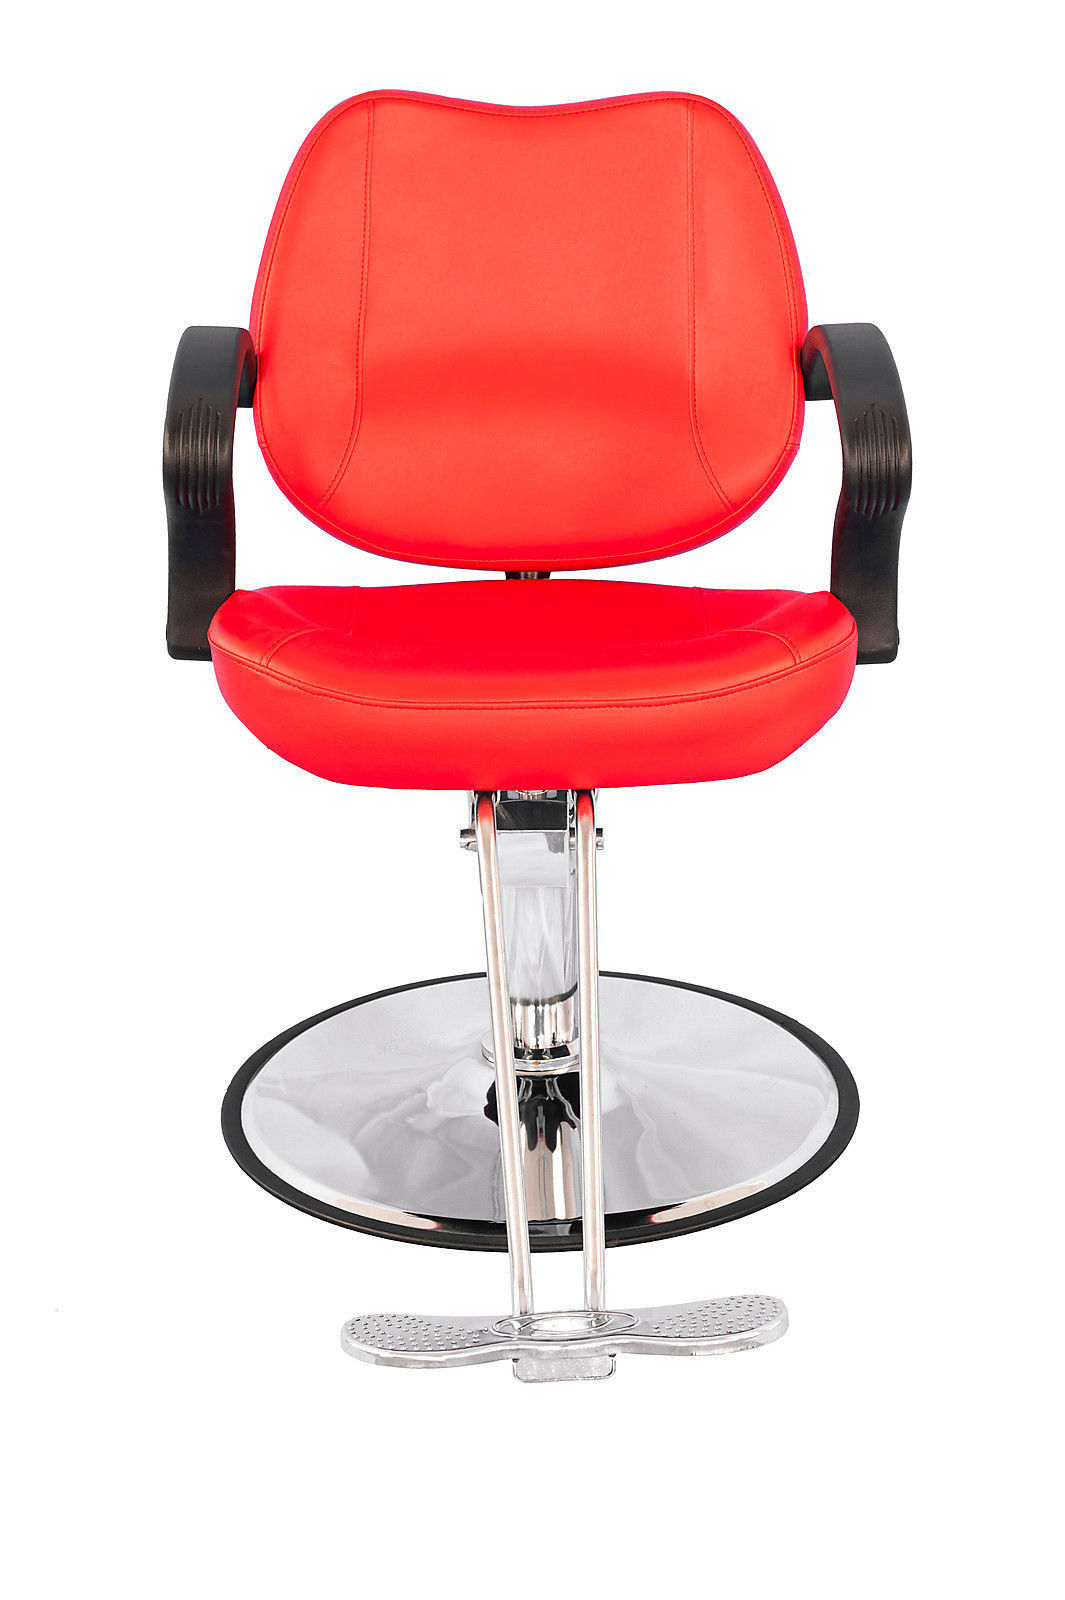 Red Barber Chair Multi Purpose Barber Chair